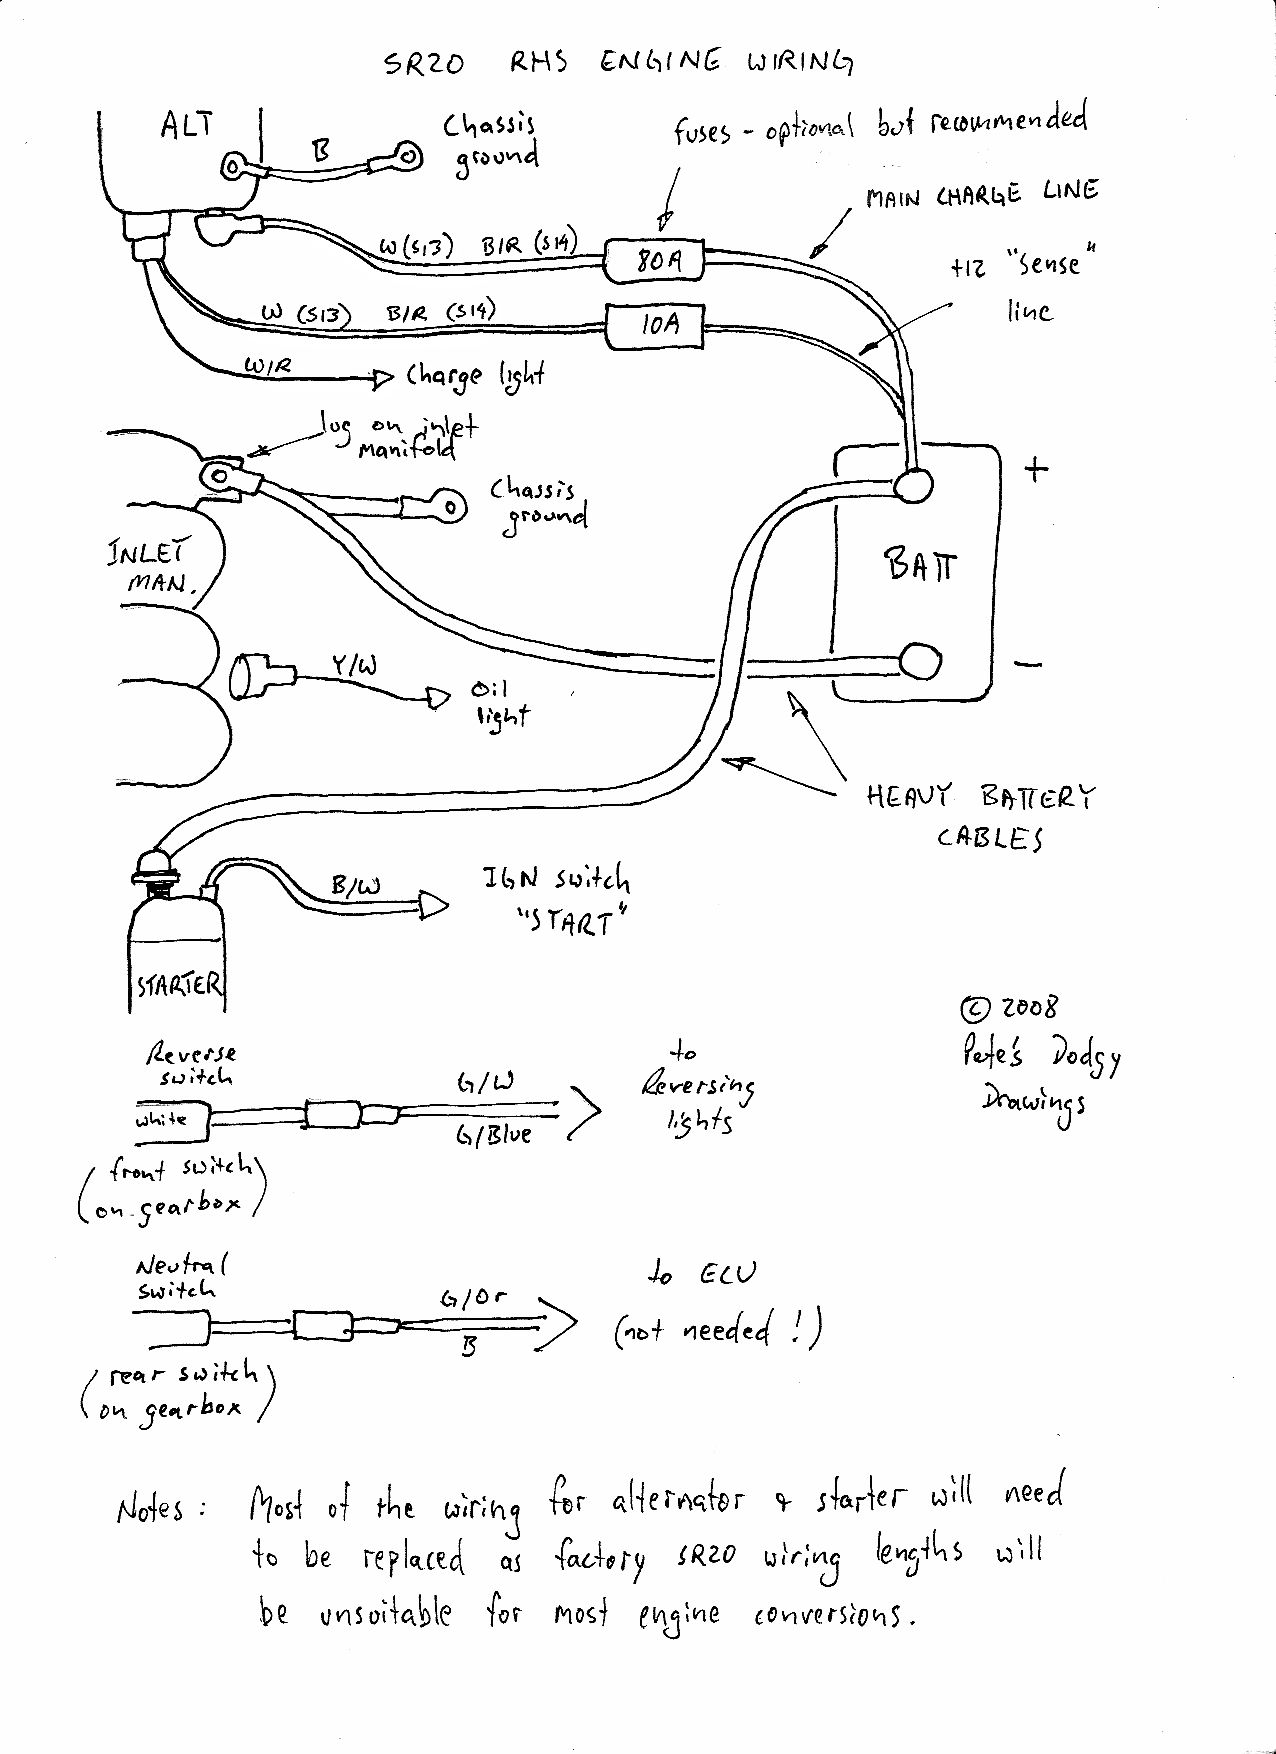 rhs_wiring sr20 wiring diagram sr20de wiring diagram \u2022 wiring diagrams j ka24de maf wiring diagram at gsmx.co